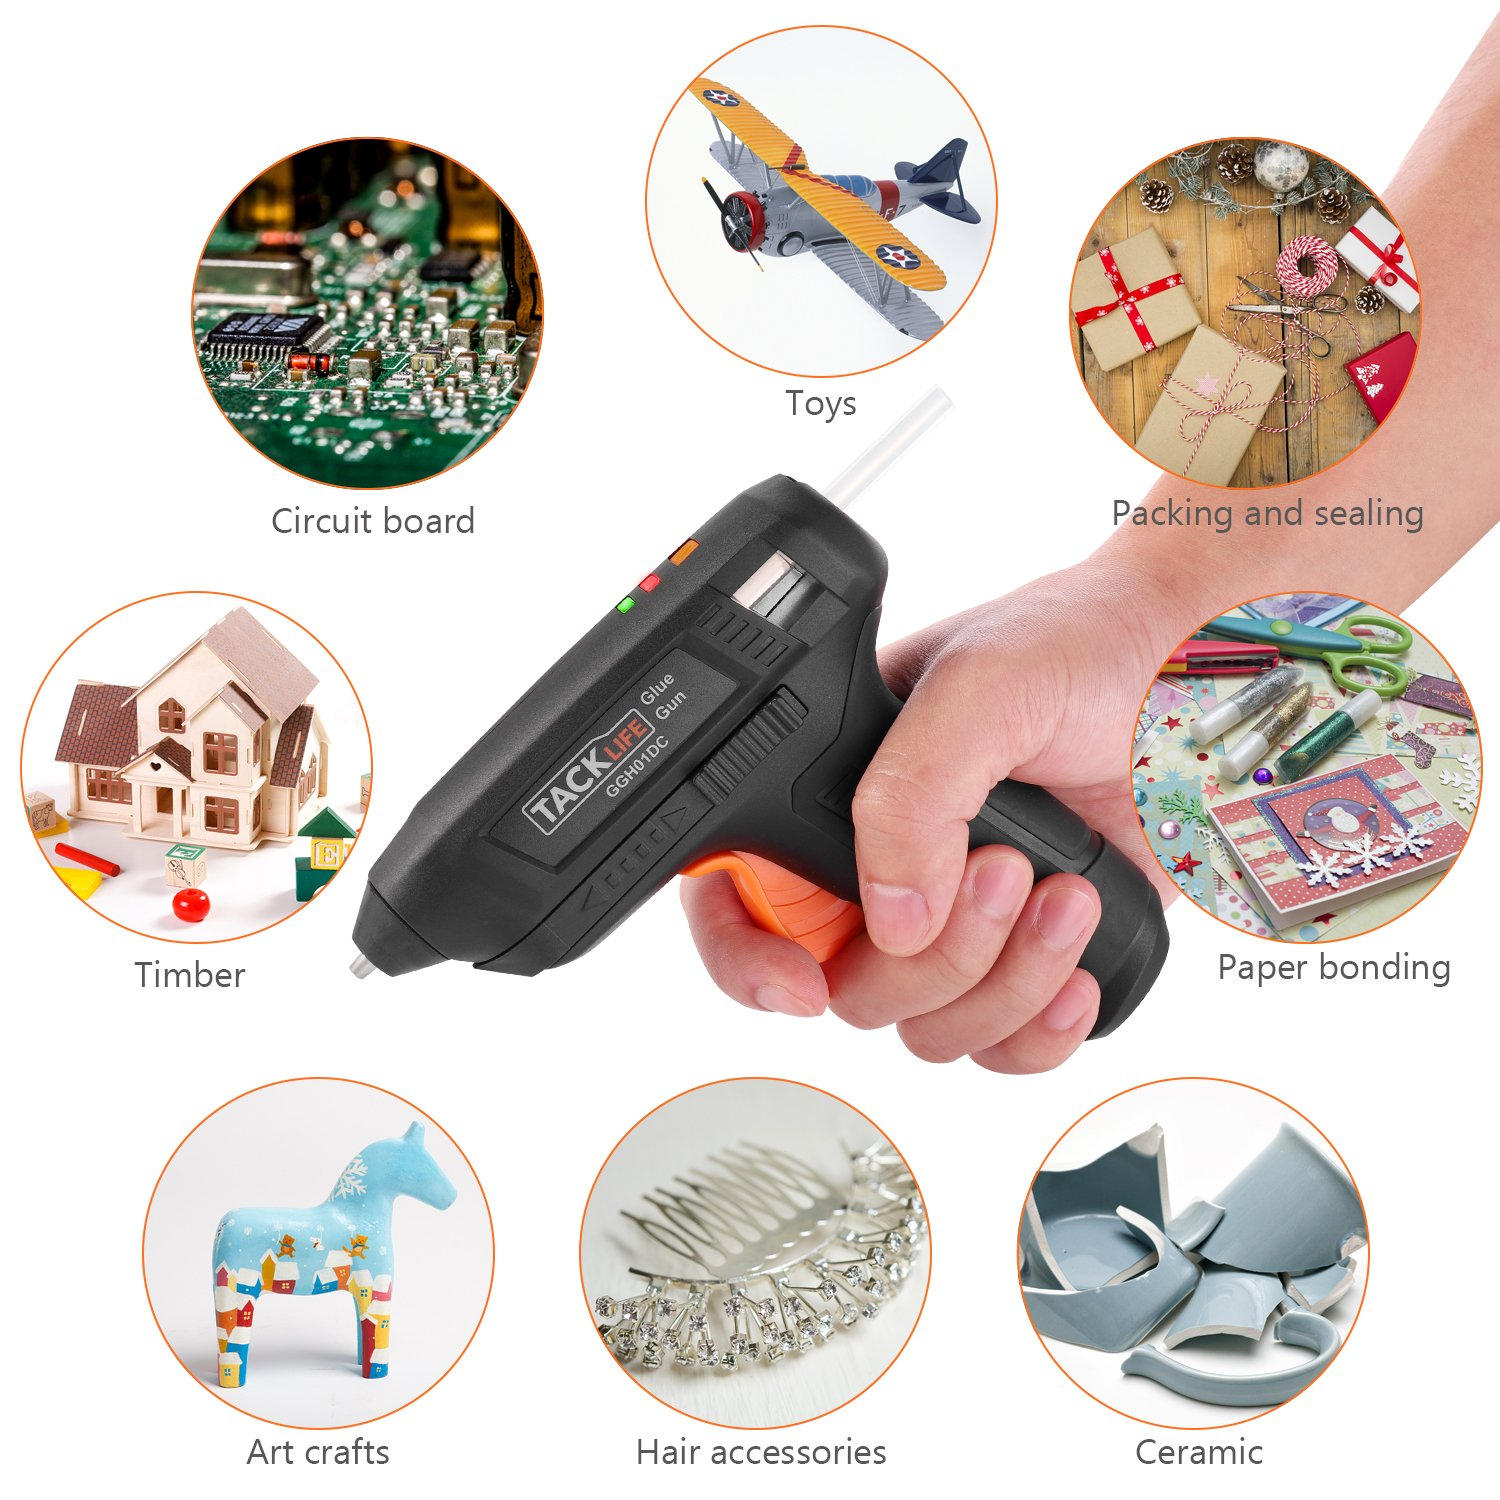 Hot Glue Gun Cordless with 50pcs Glue Sticks, Tacklife 3.6V Rechargeable Melting Glue Gun with USB Charging Cable, Seperate On/Off Switch for DIY and Repair Kit - GGH01DC by TACKLIFE (Image #6)